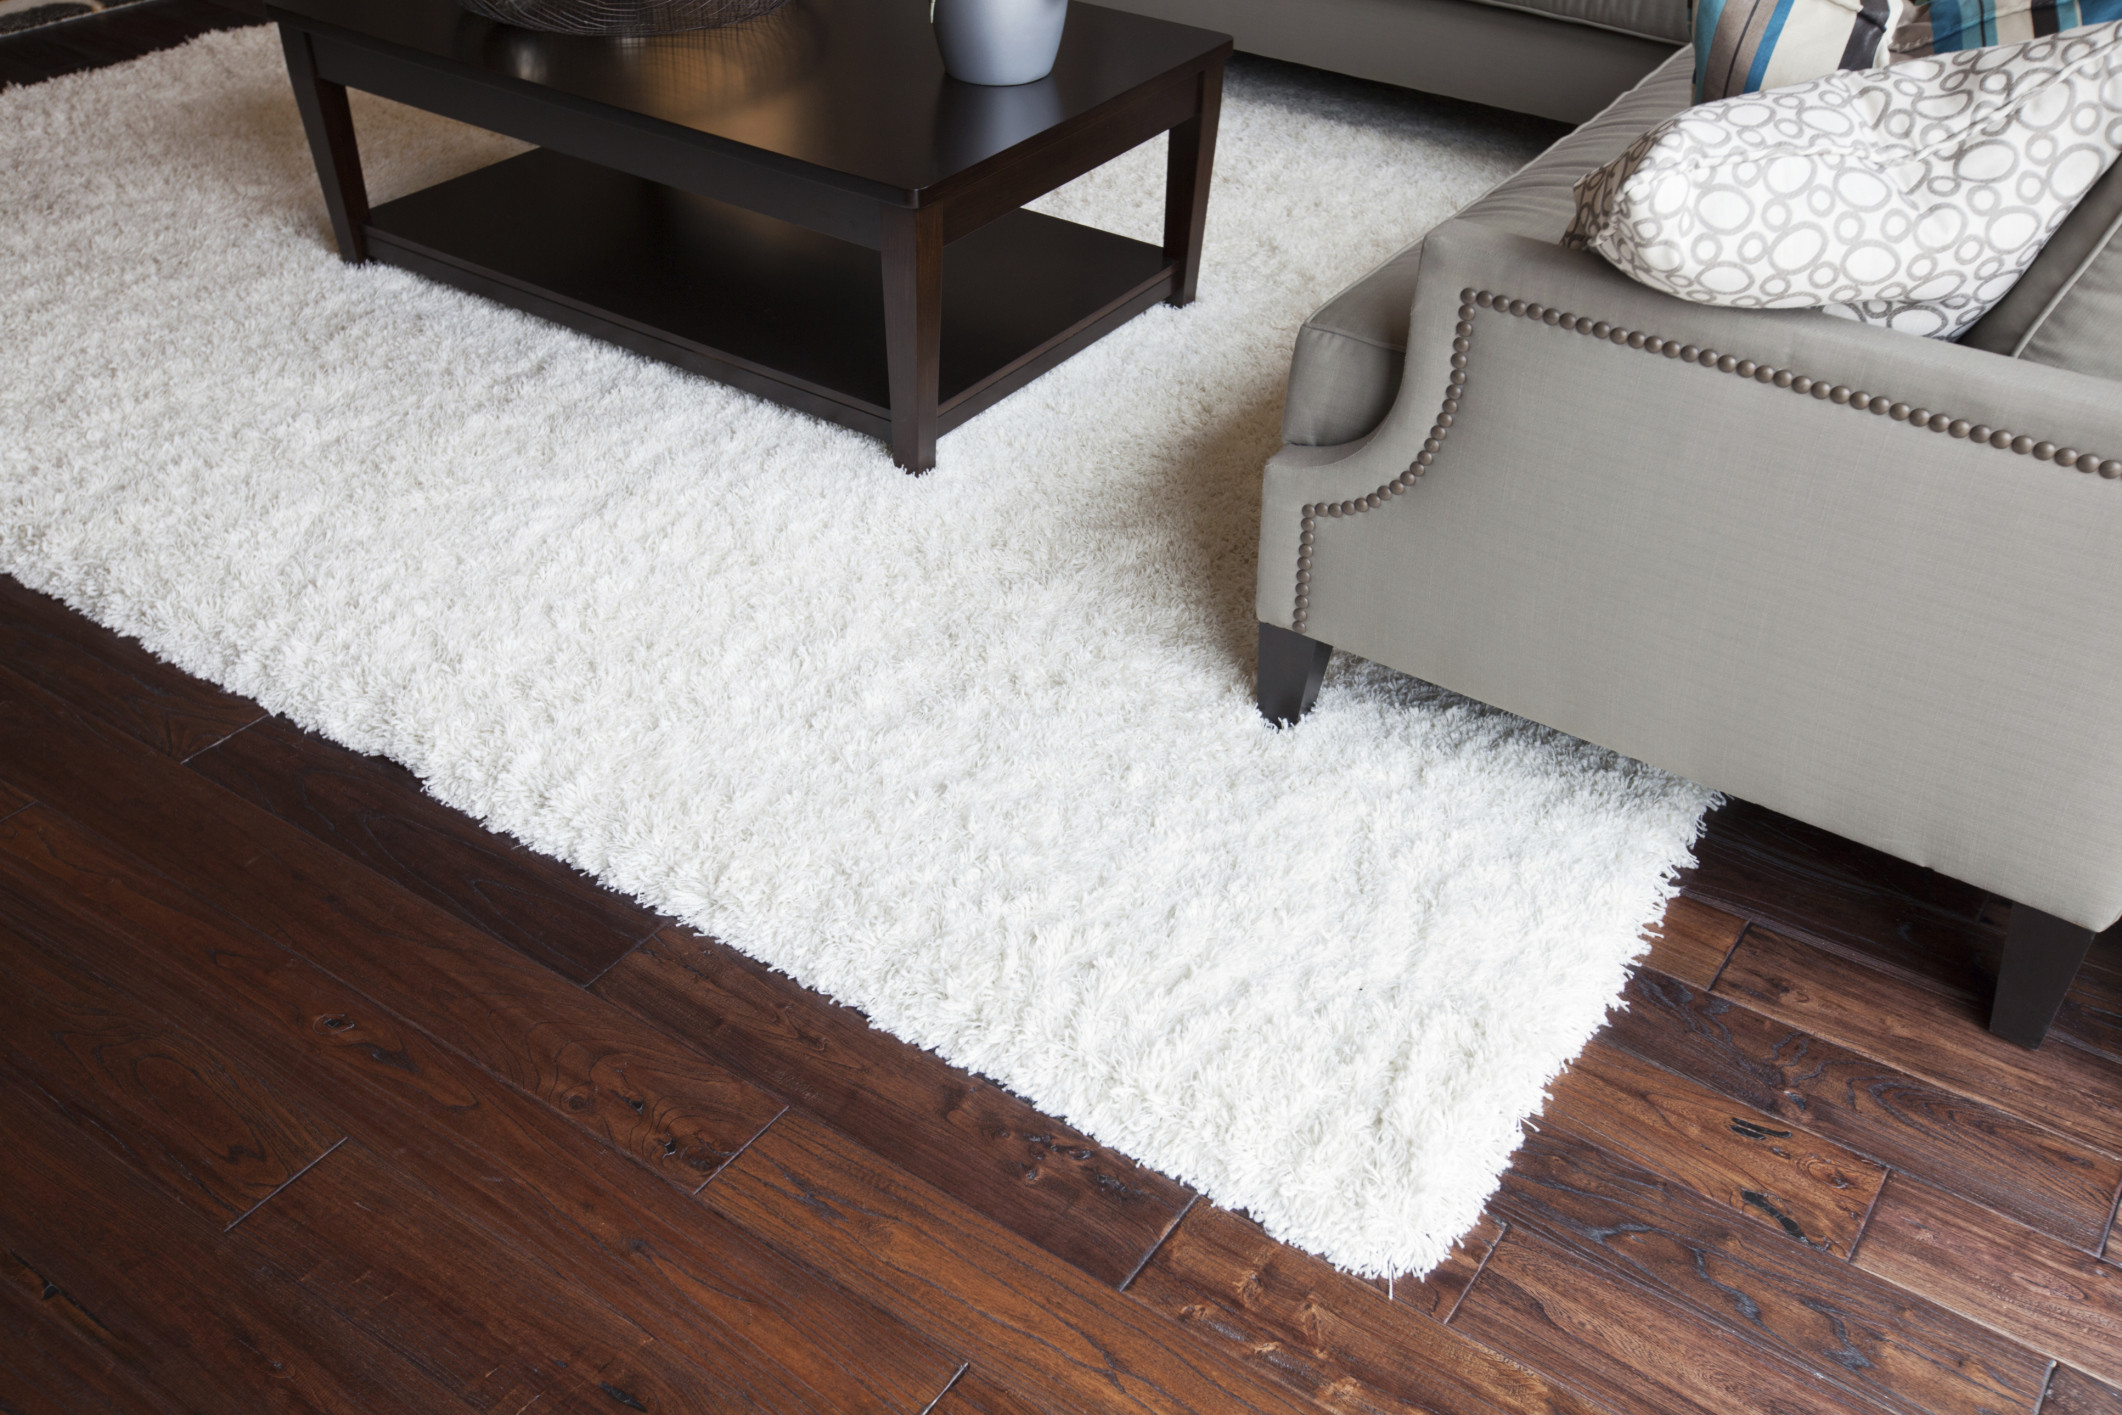 Best Kitchen Floor Mat 9 Things Youre Doing To Ruin Your Hardwood Floors Without Even